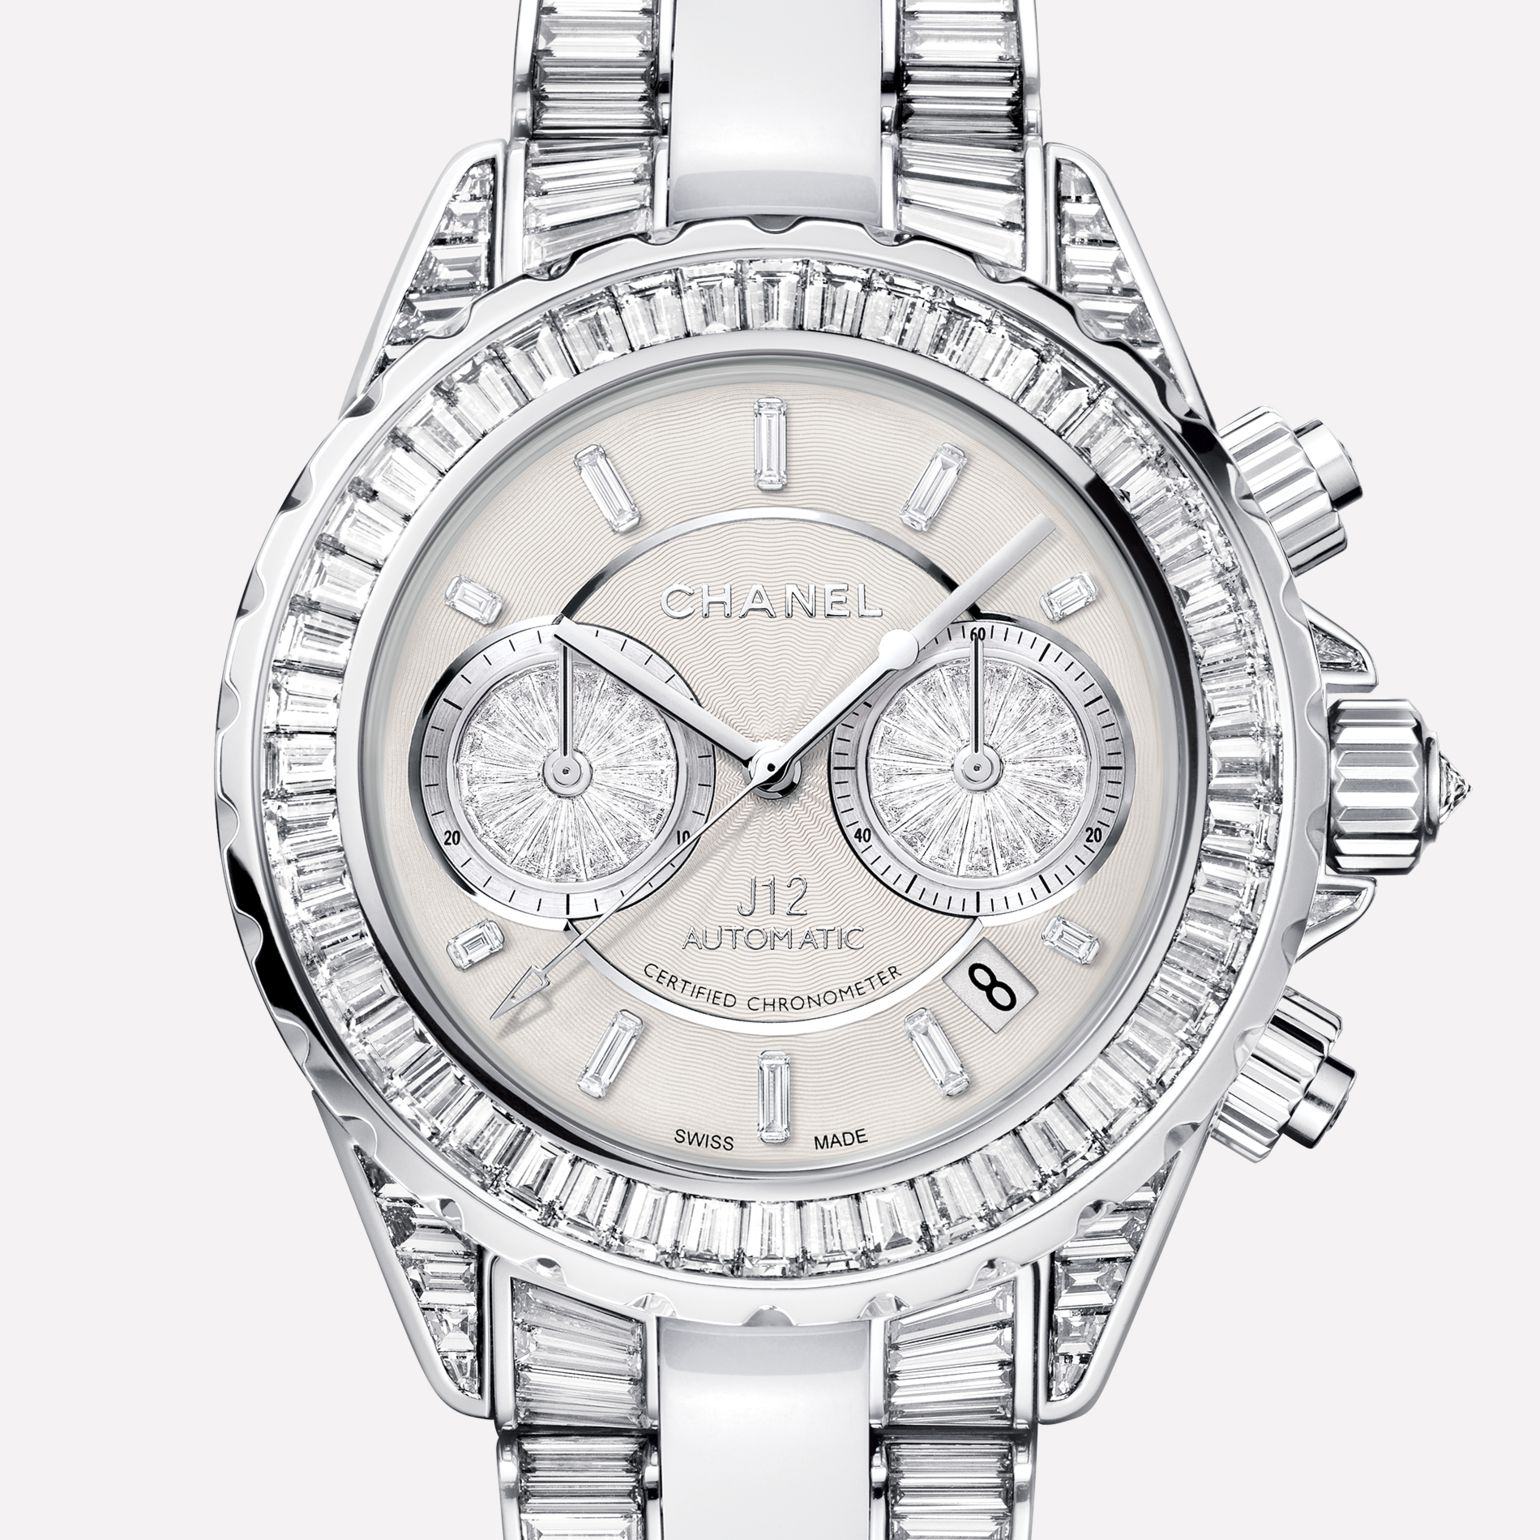 Breitling Chrono Matic 49 Replica